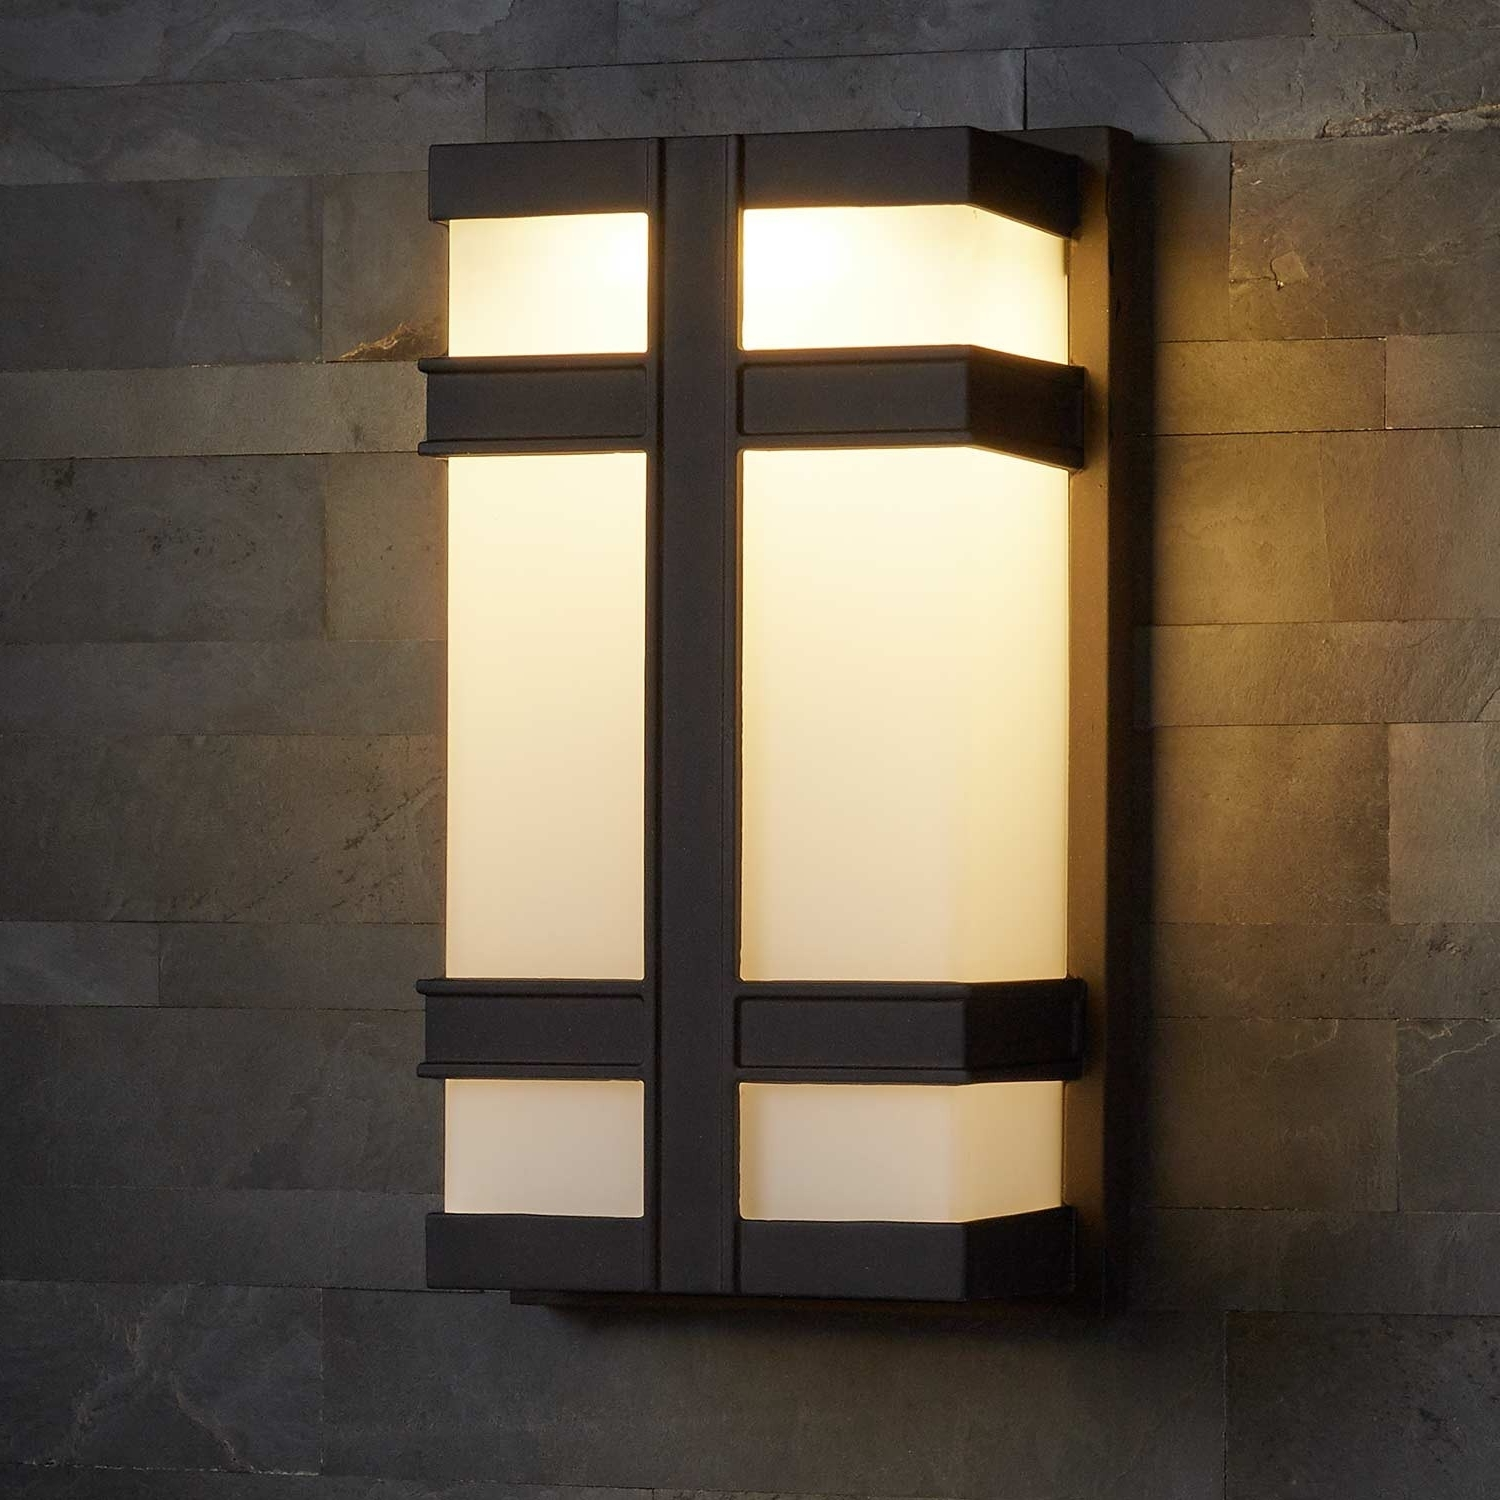 Latest Payne Outdoor 2 Led Light Entrance Wall Sconce – Outdoor For Outdoor Wall Sconce Led Lights (View 8 of 20)